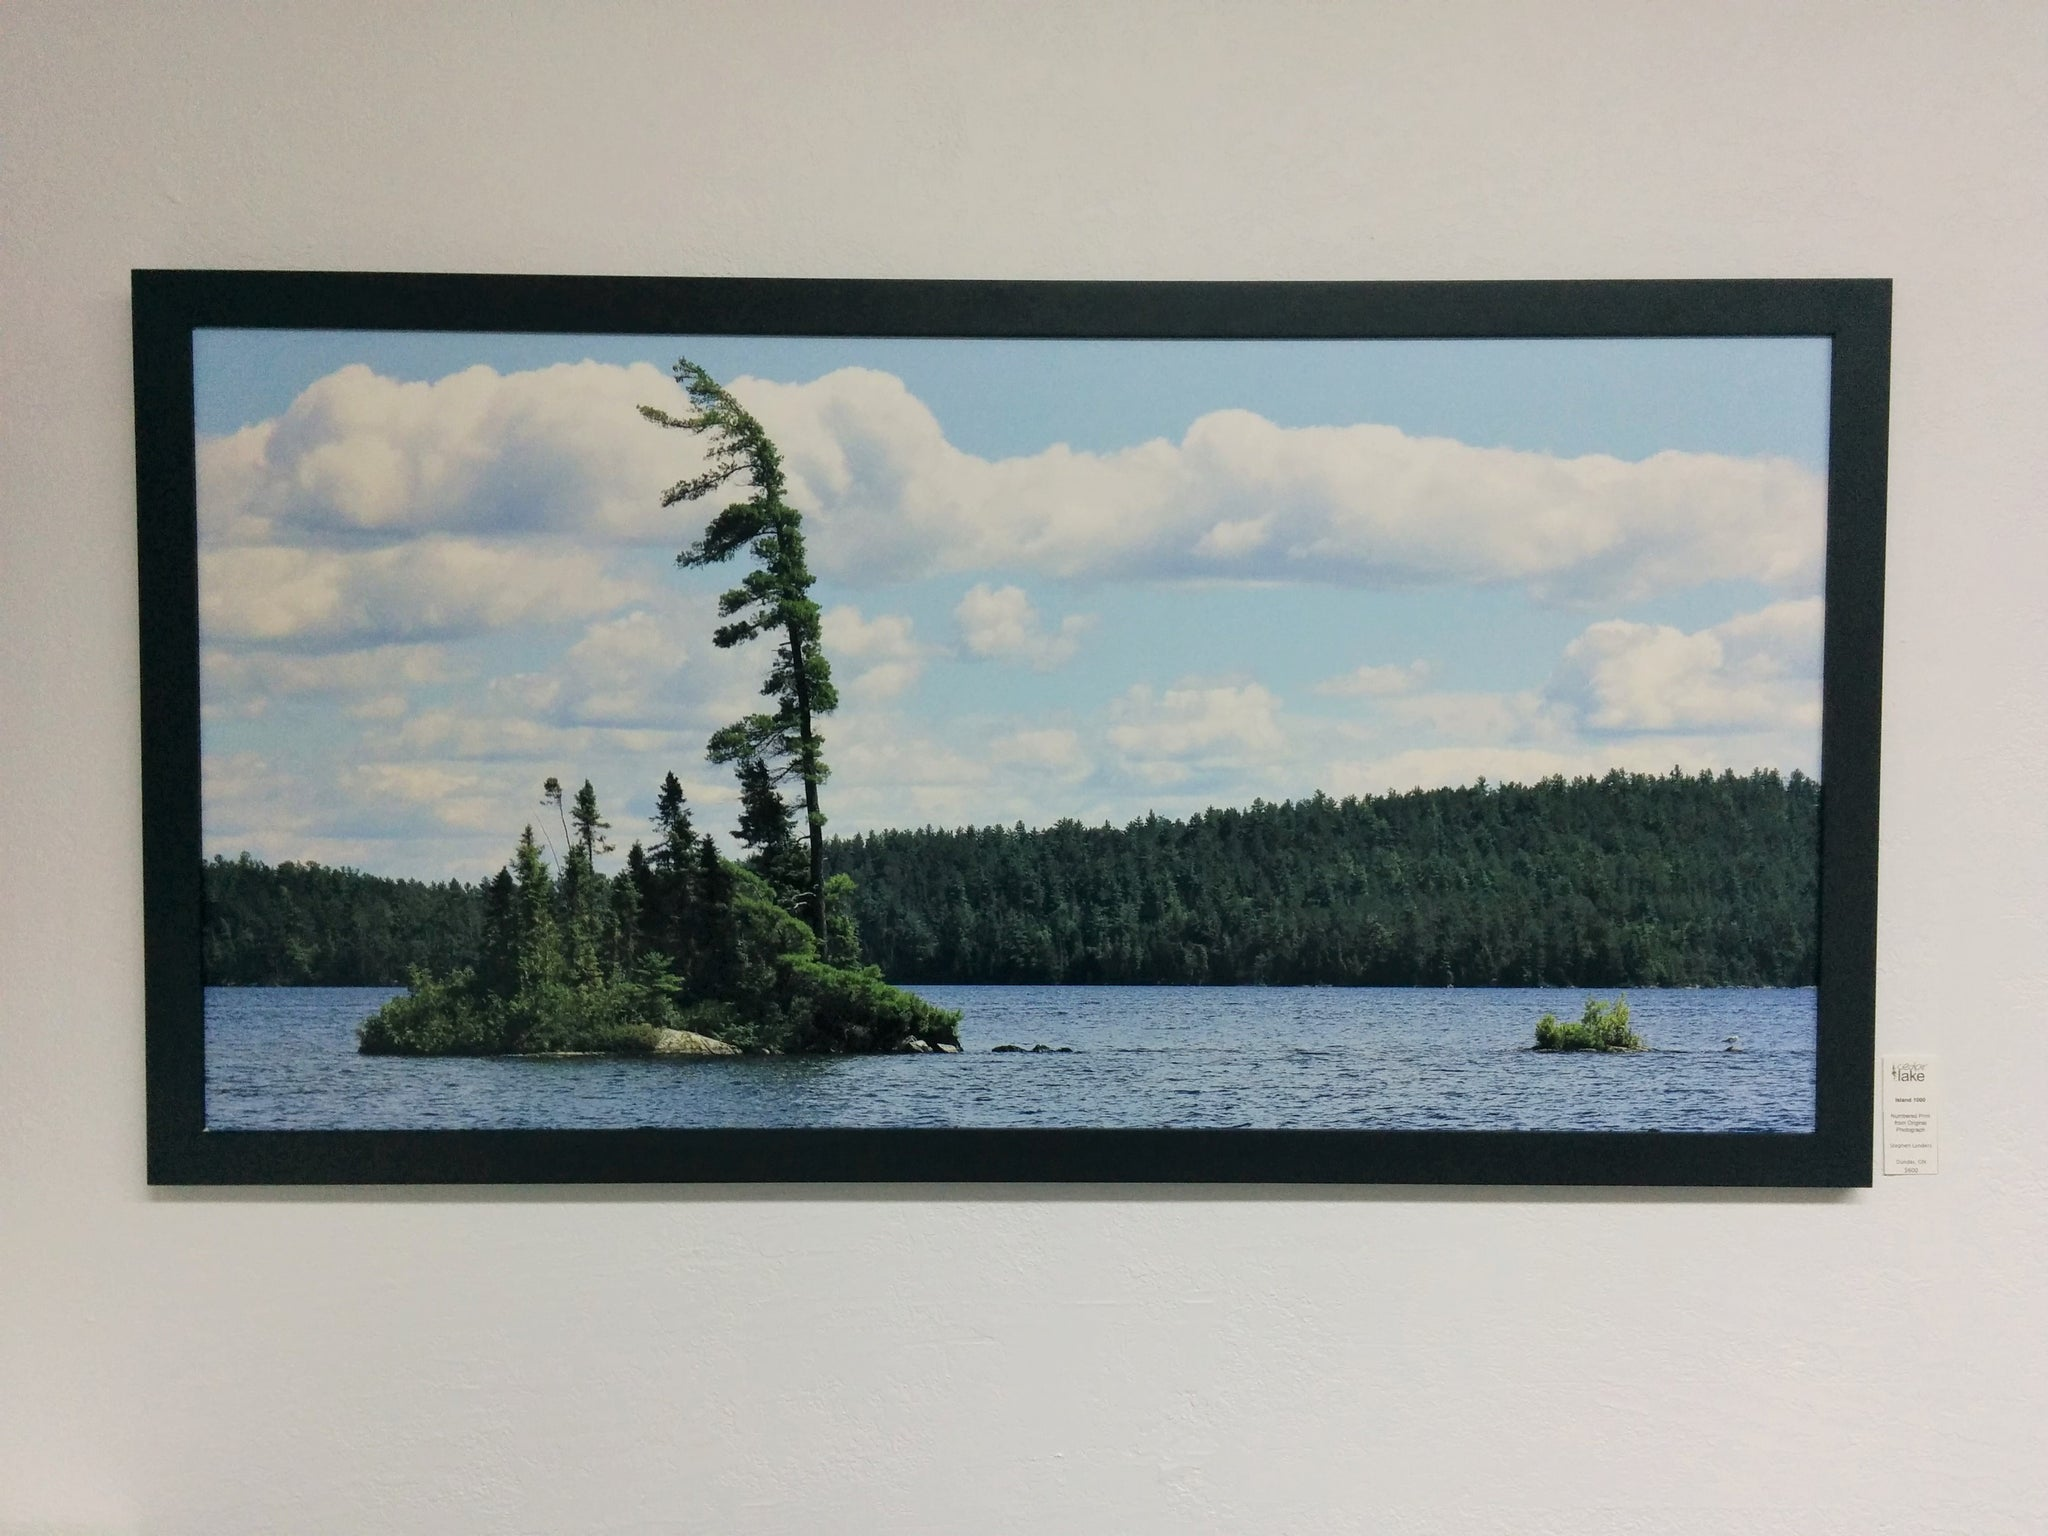 Art Photography - Framed Numbered Print - Island1,000